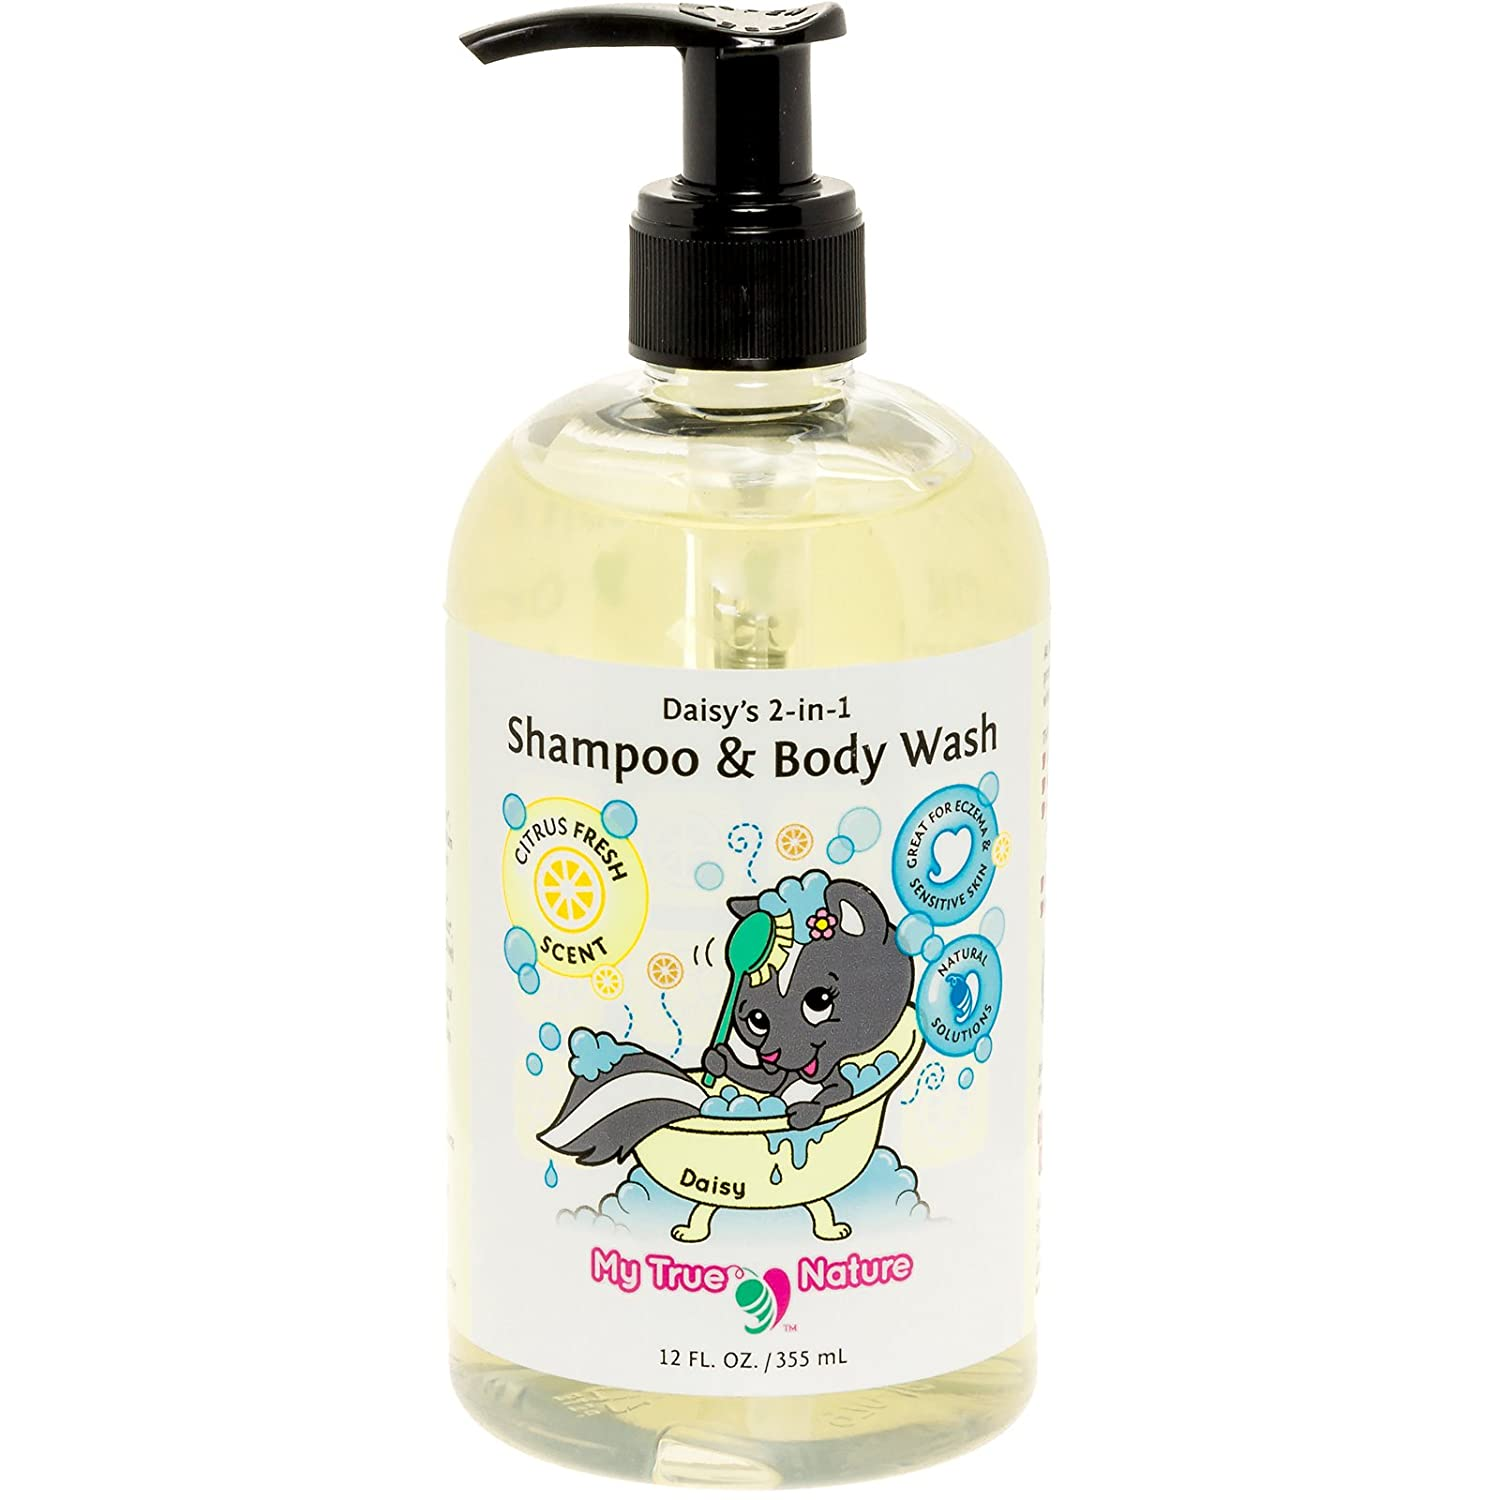 All Natural Baby Shampoo Body Wash - Daisys 2-in-1 Shampoo/Body Wash for Sensitive Skin